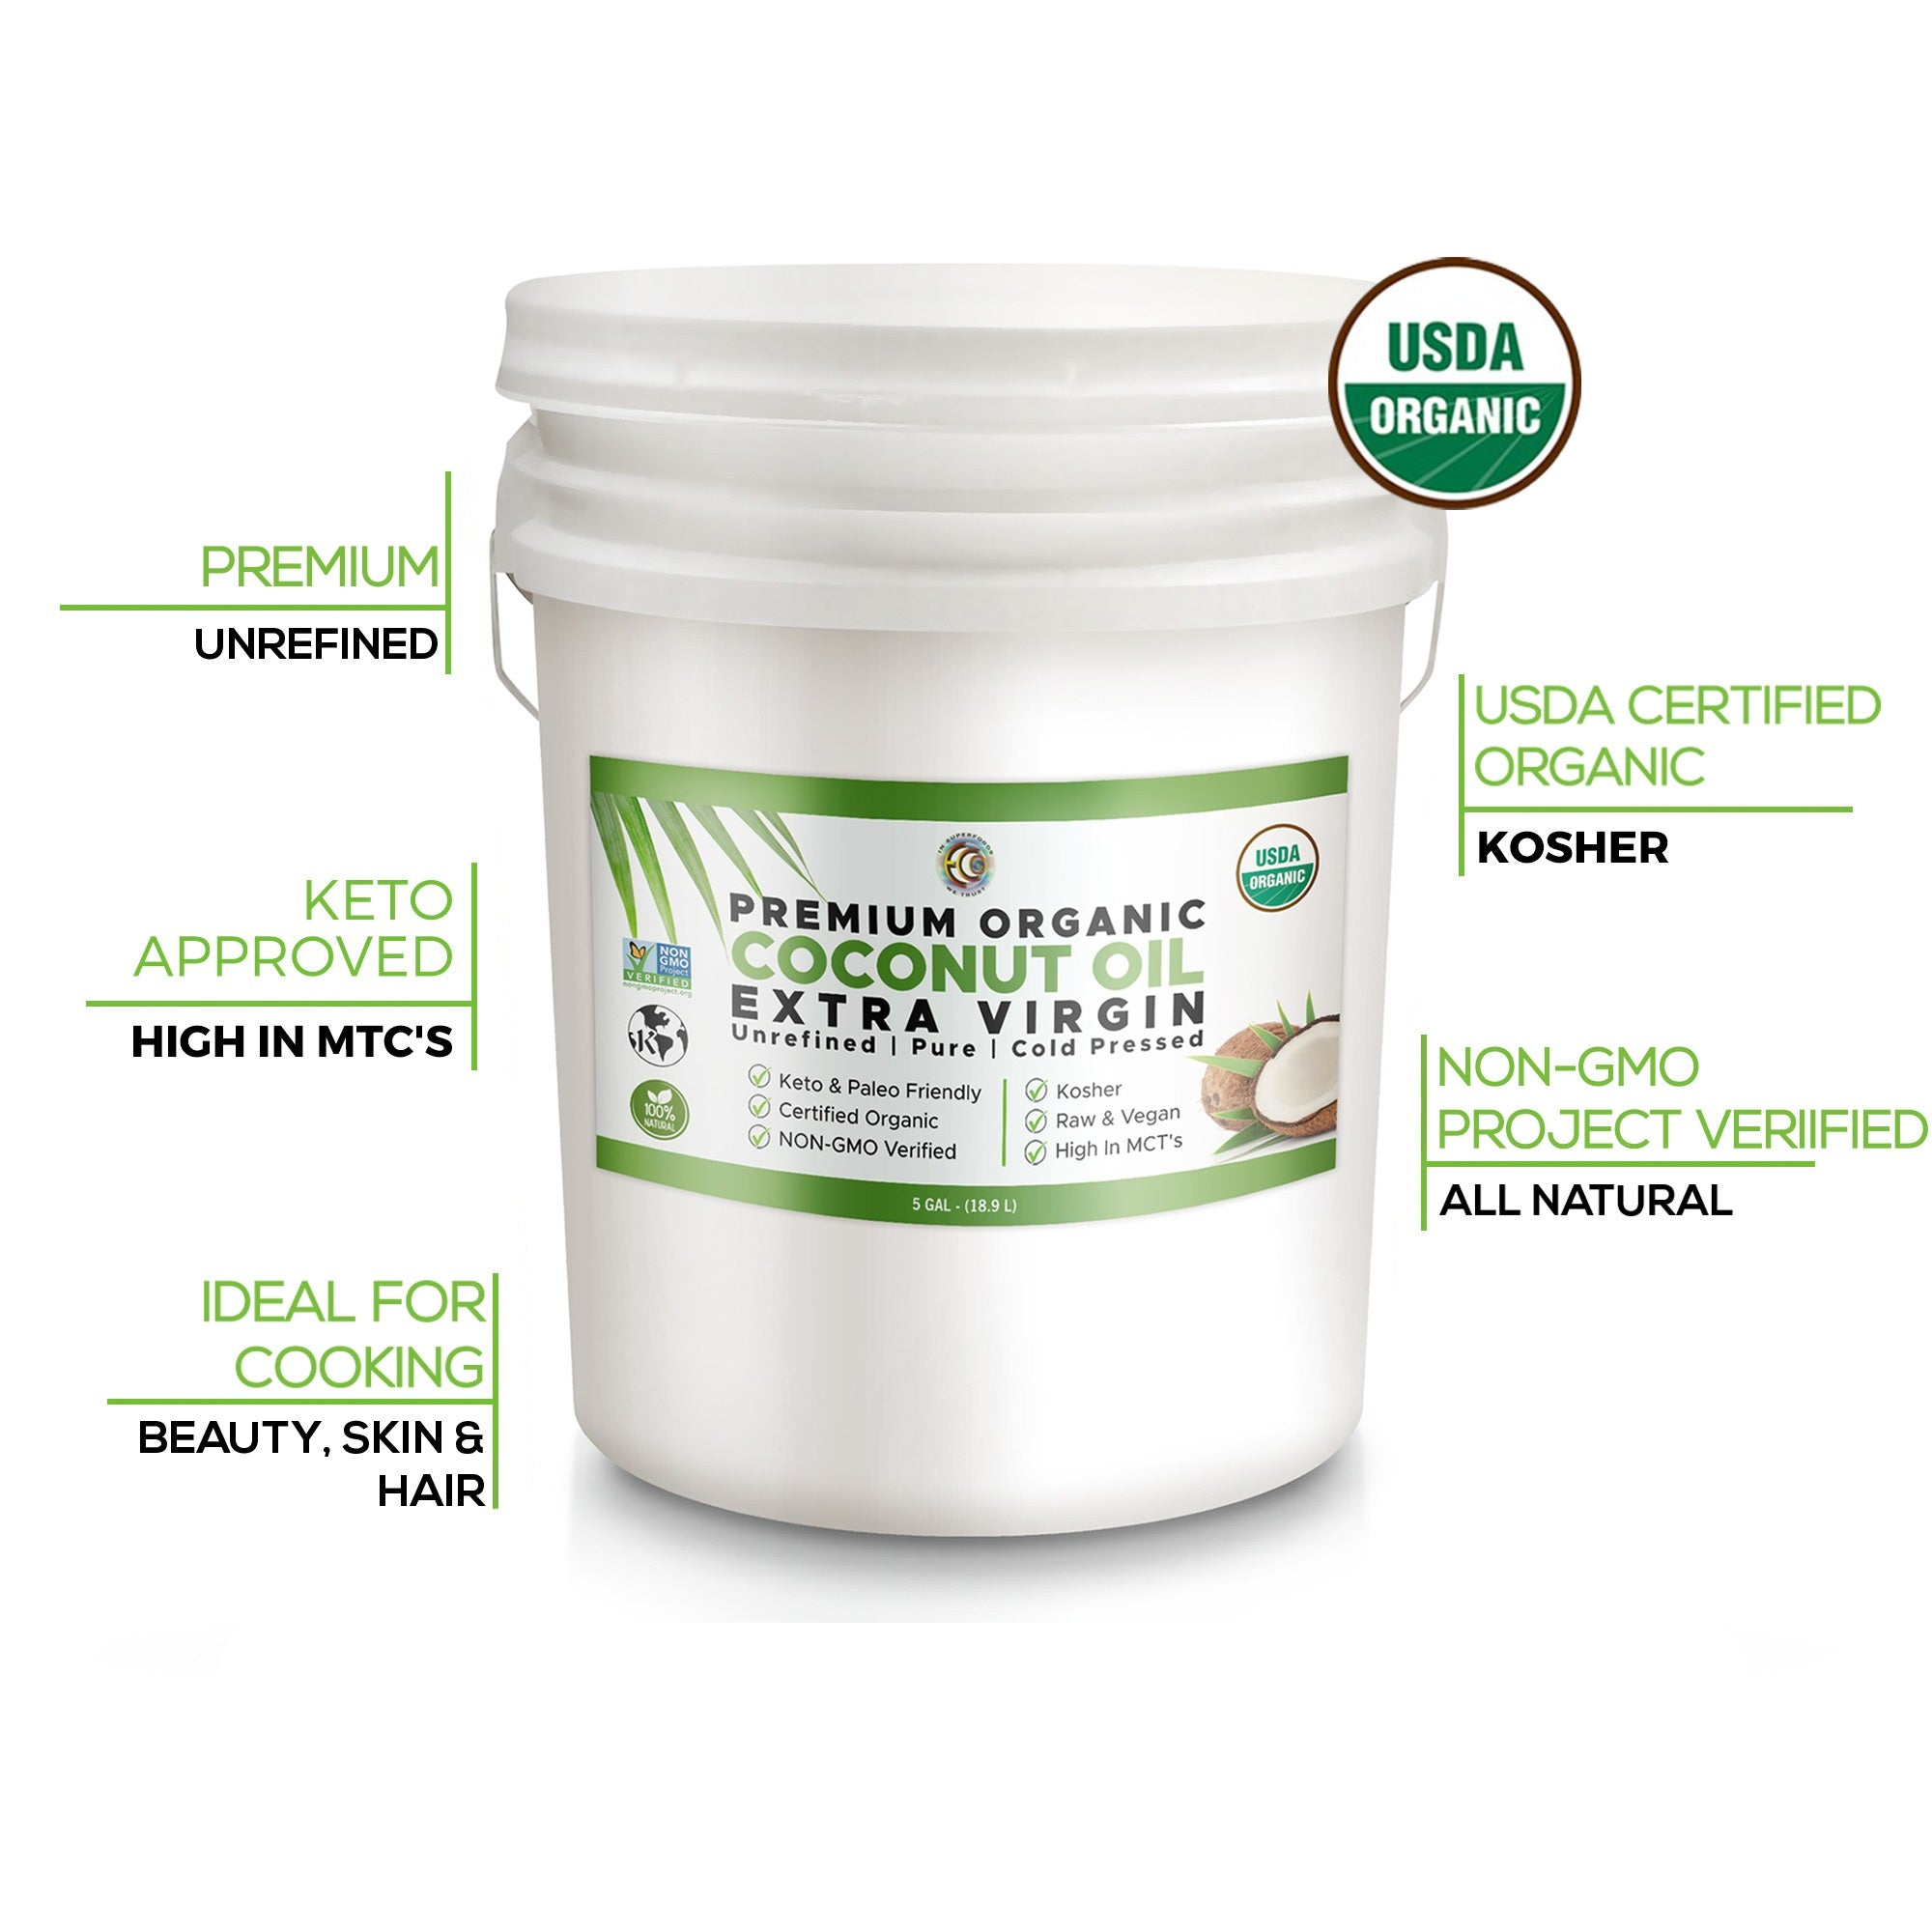 Earth Circle Organic Pure Unrefined Extra Virgin Coconut Oil | Baking | Smoothies | Skin & Hair Care | Gluten-Free | Keto & Paleo Friendly - 5 Gallon